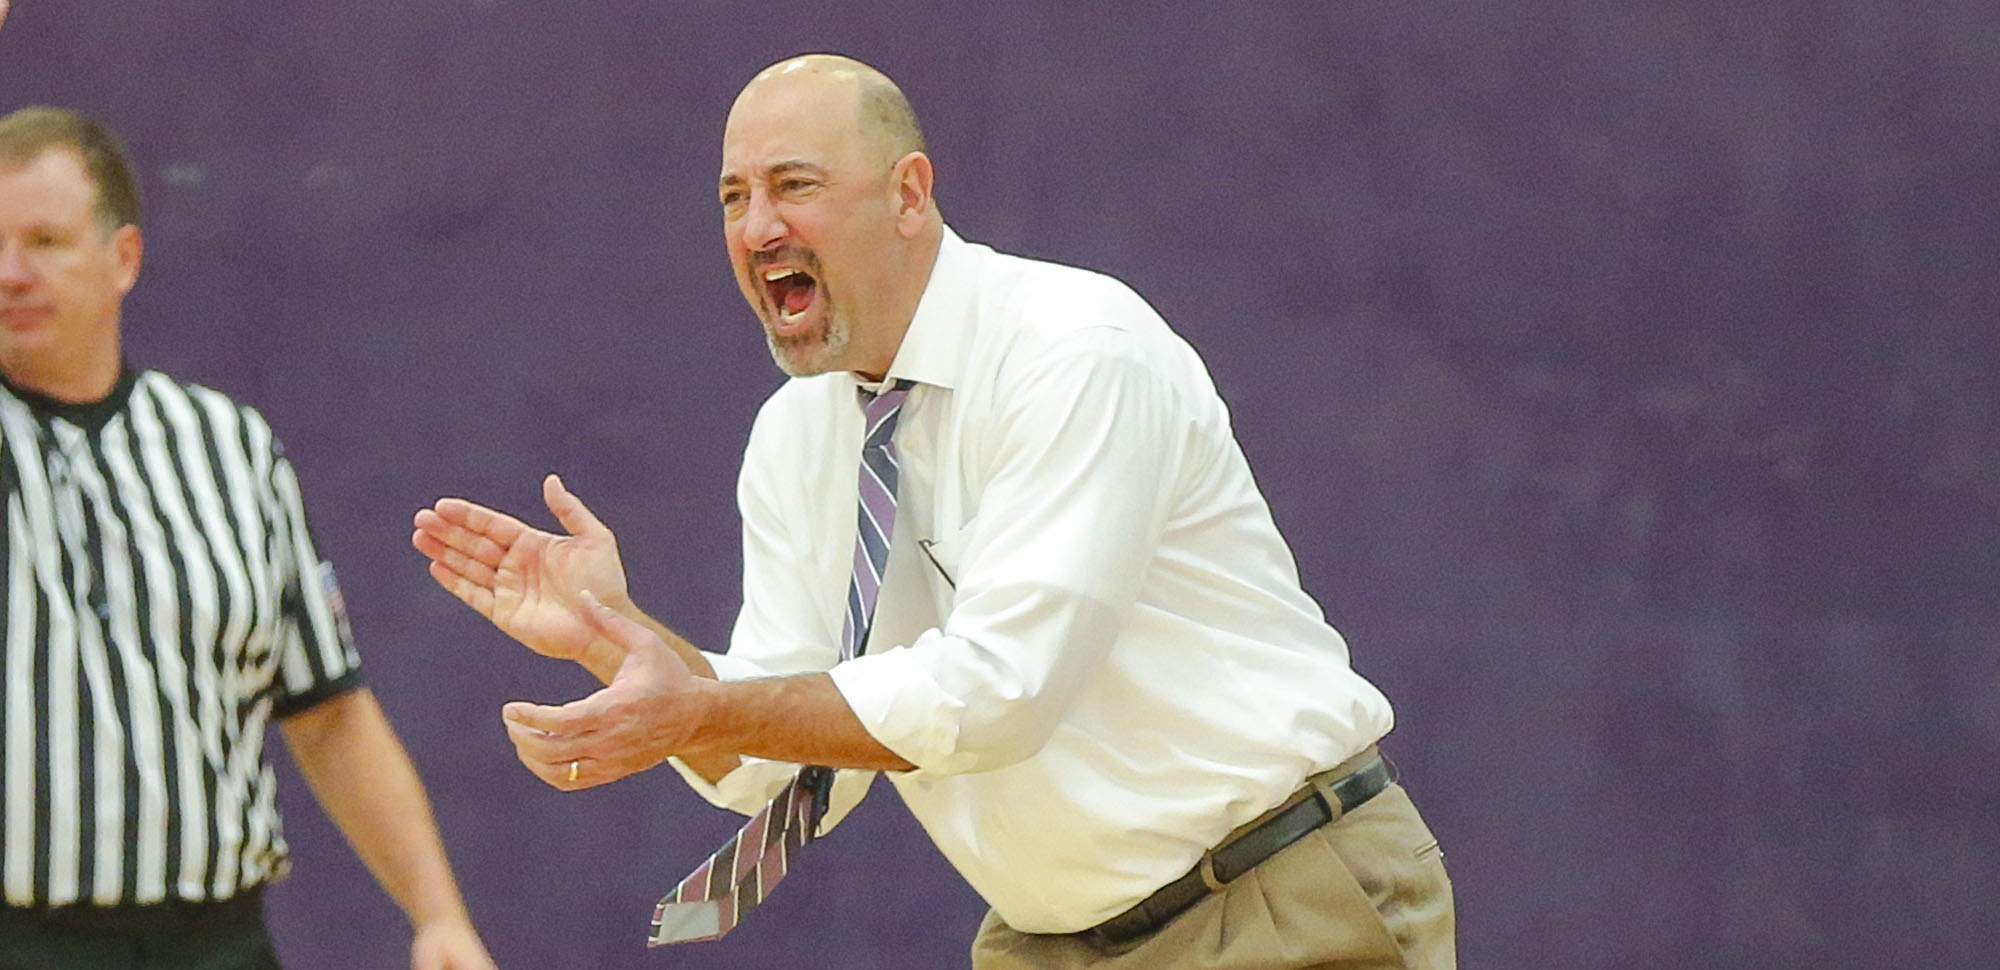 Head coach Carl Danzig earned his 300th career victory on Wednesday night as the Royals routed Drew, 64-39.